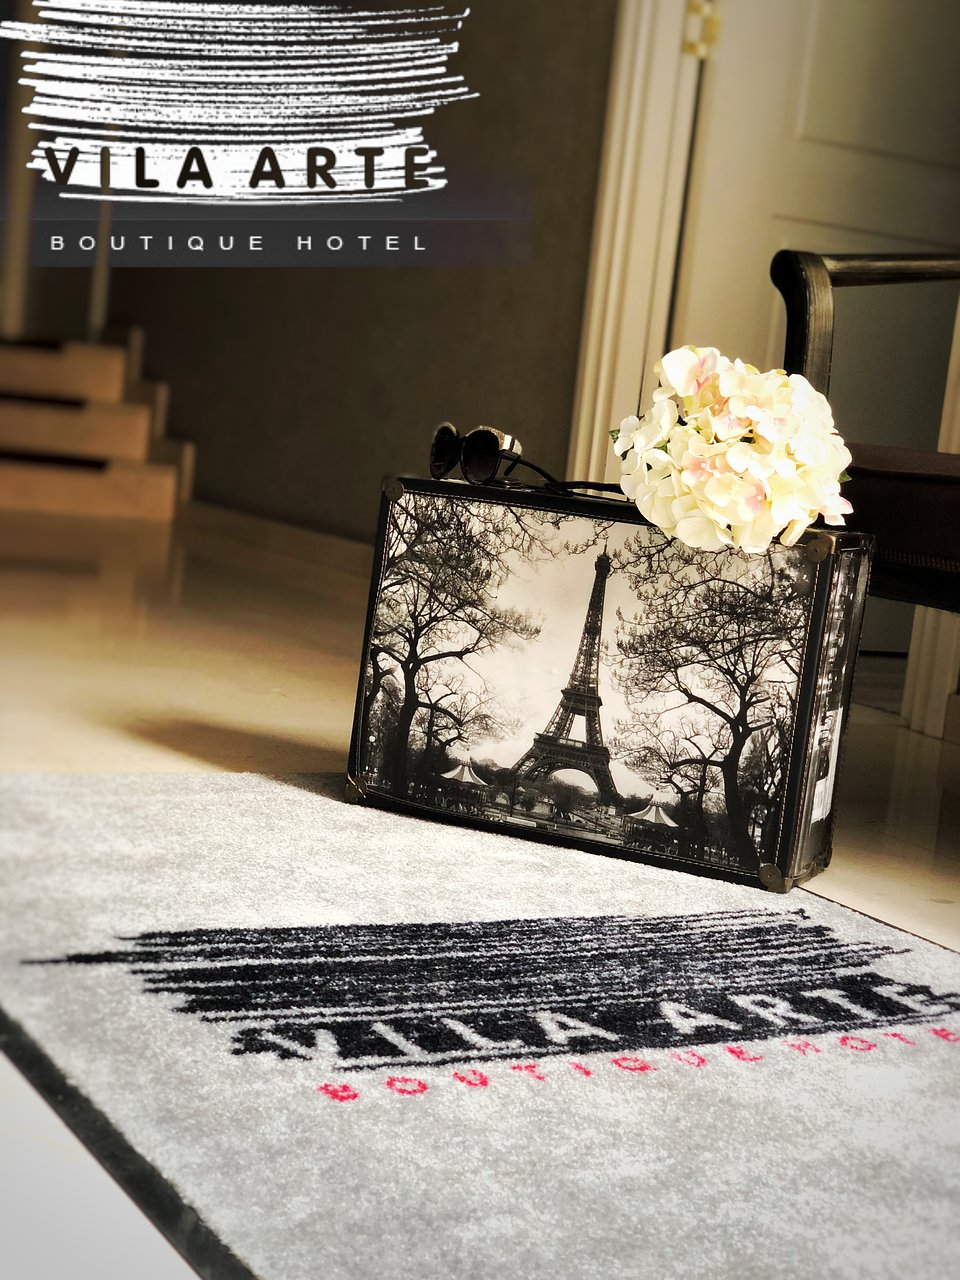 Arte Boutique Ibi Vila Arte Updated 2019 Prices Villa Reviews Bucharest